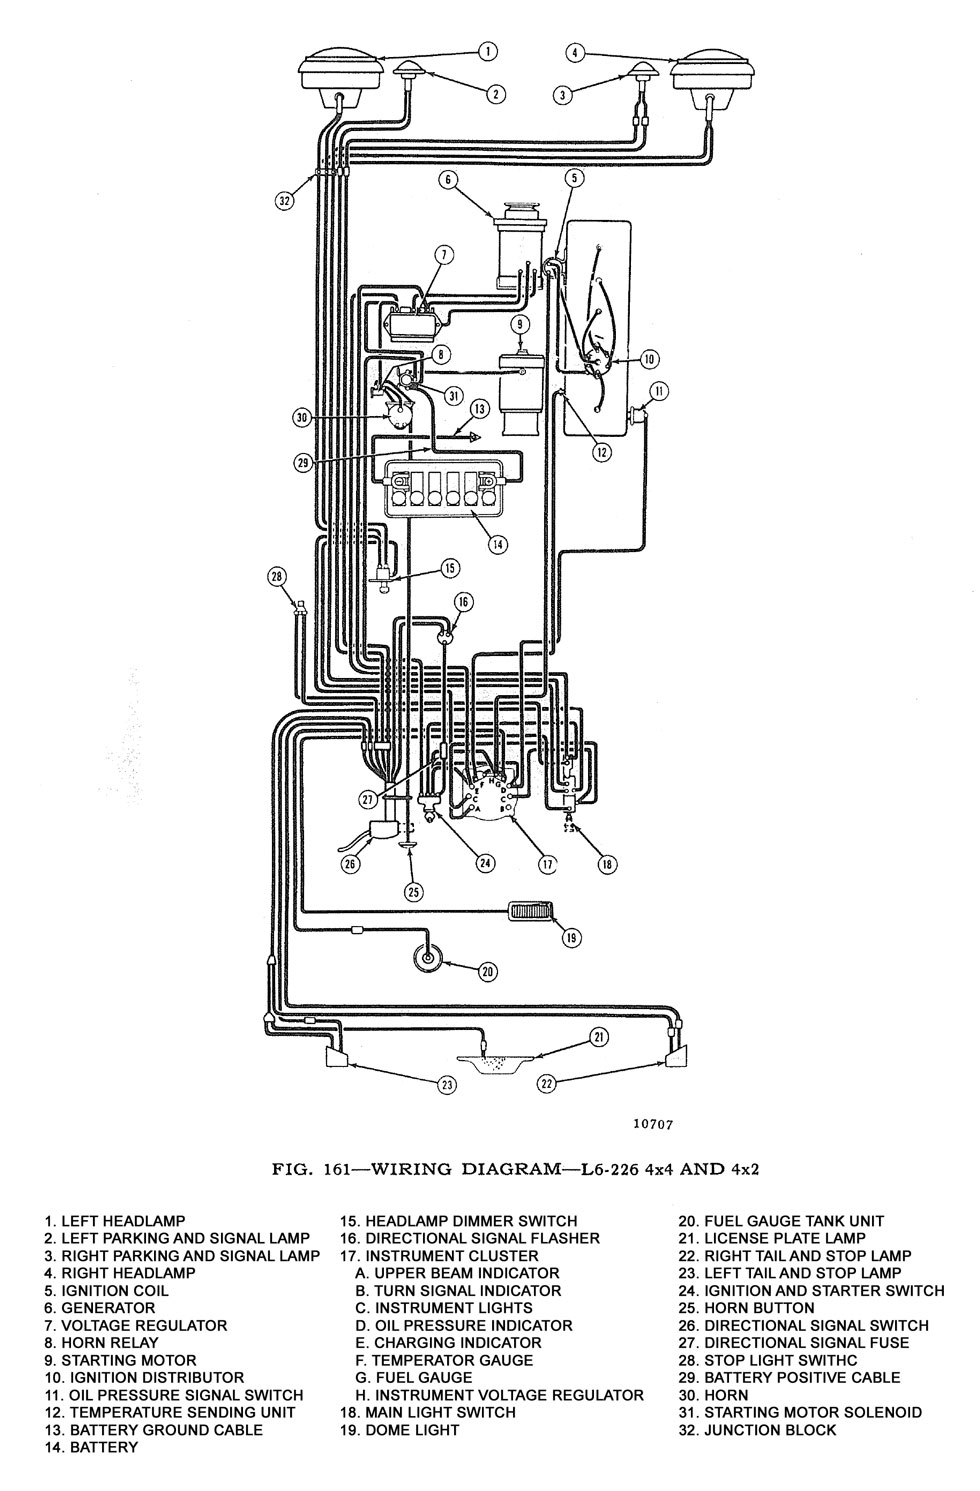 Bz 5042  Willys Jeep Engine Diagram Get Free Image About Wiring Diagram Free Diagram